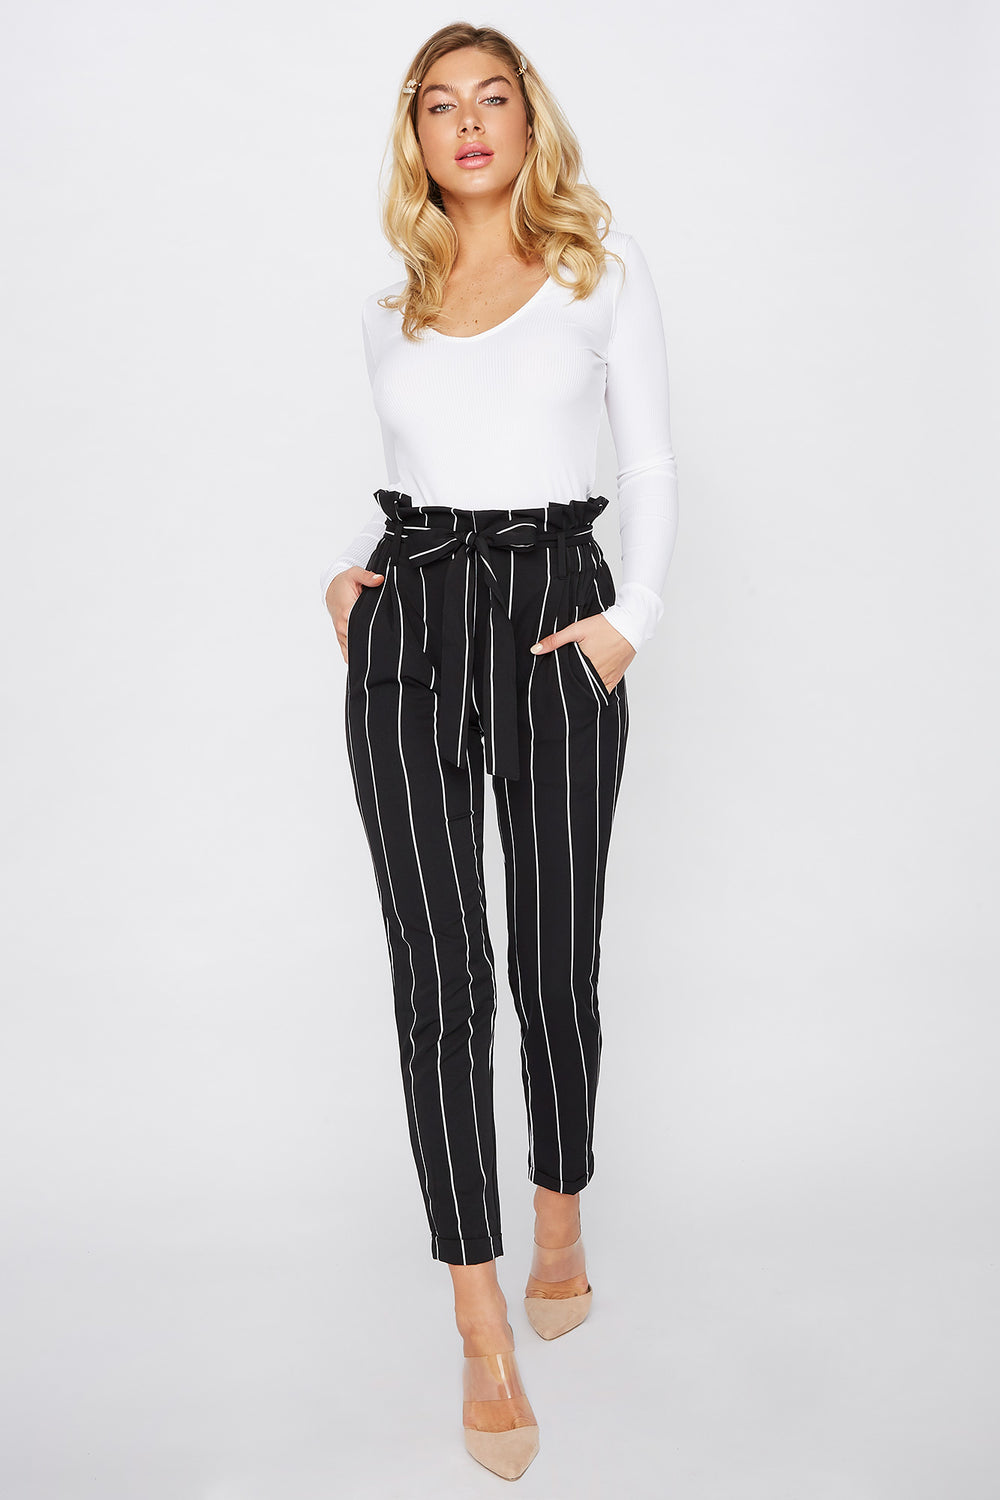 Cuffed Self Belted Paperbag Pant Black With White